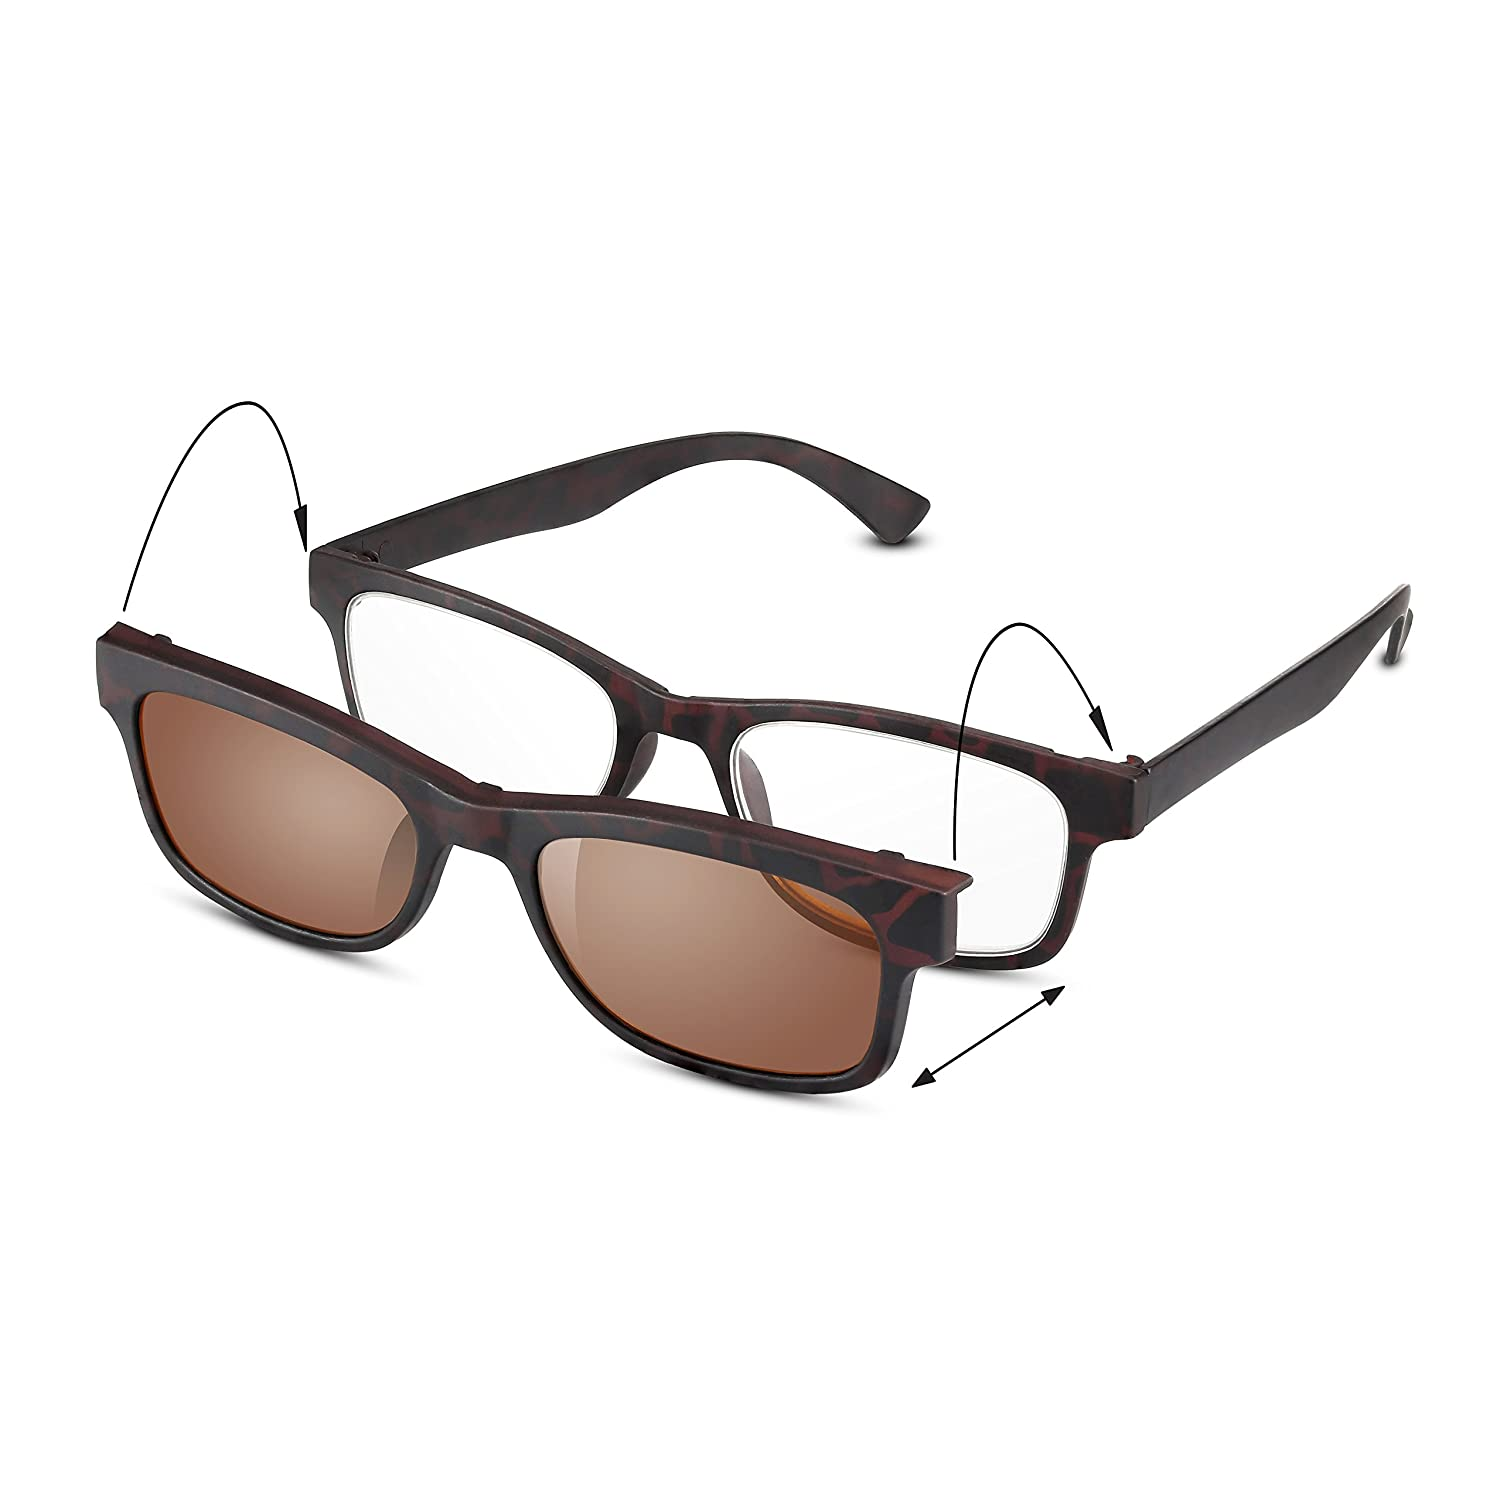 6135f26e93 Read Optics New 2-in-1 Clip-On Sunglasses  +2 Mens Womens Reading Glasses  Transform into Sun Readers with UV-400 Tinted Lens. Fashionable Italian  Style.